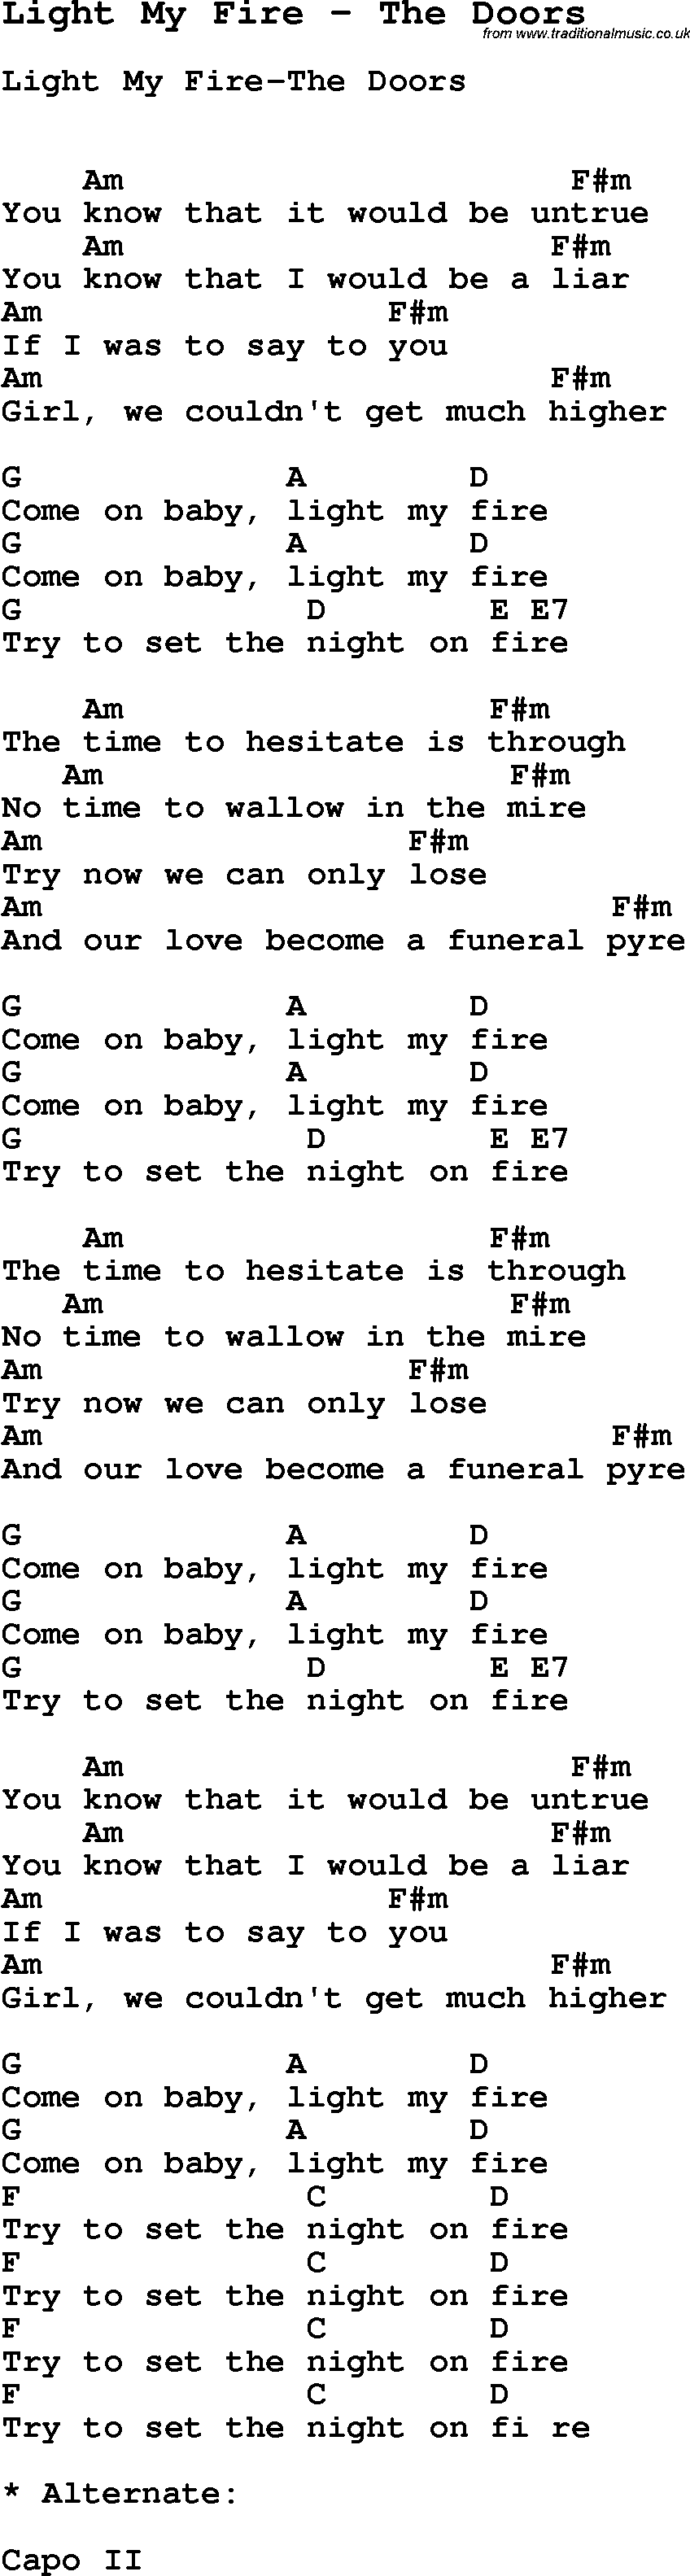 Song Light My Fire By The Doors With Lyrics For Vocal Performance And Accompaniment Chords For Ukulele Gui Ukulele Songs Guitar Chords For Songs Guitar Songs